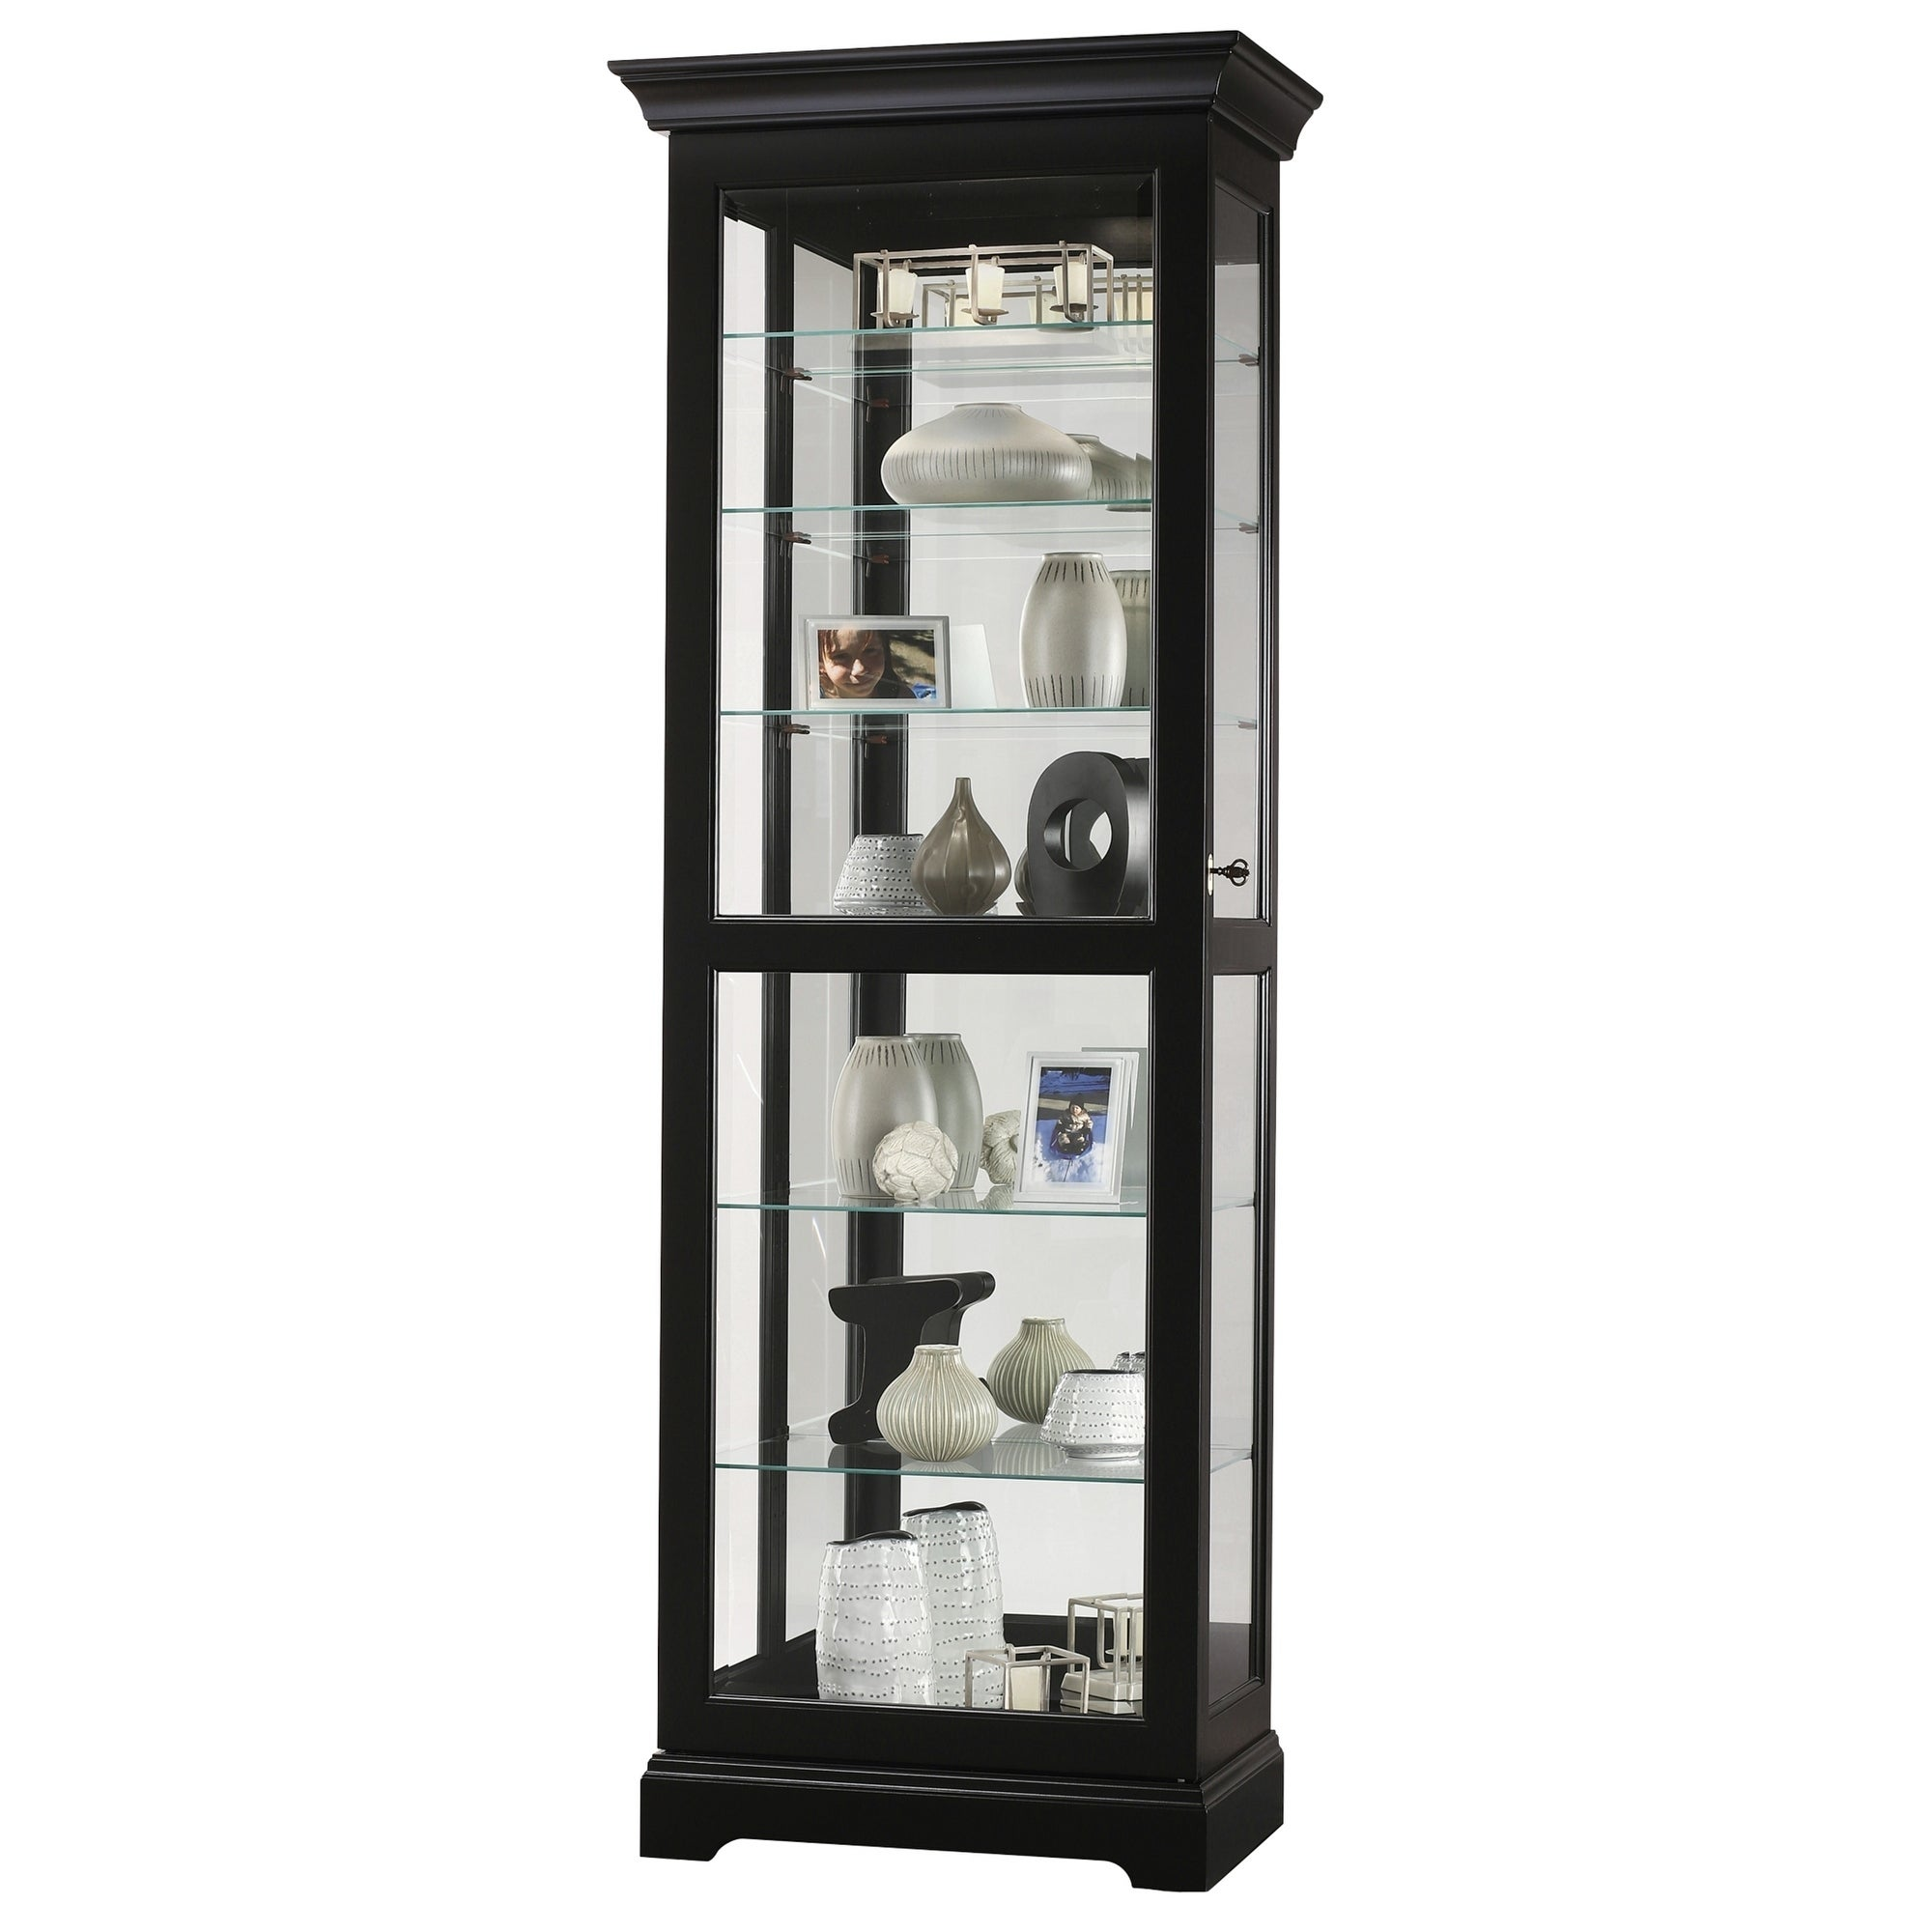 Howard Miller Martindale Iii Rich Black Wood Tall 7 Shelf Living Room Curio Cabinet